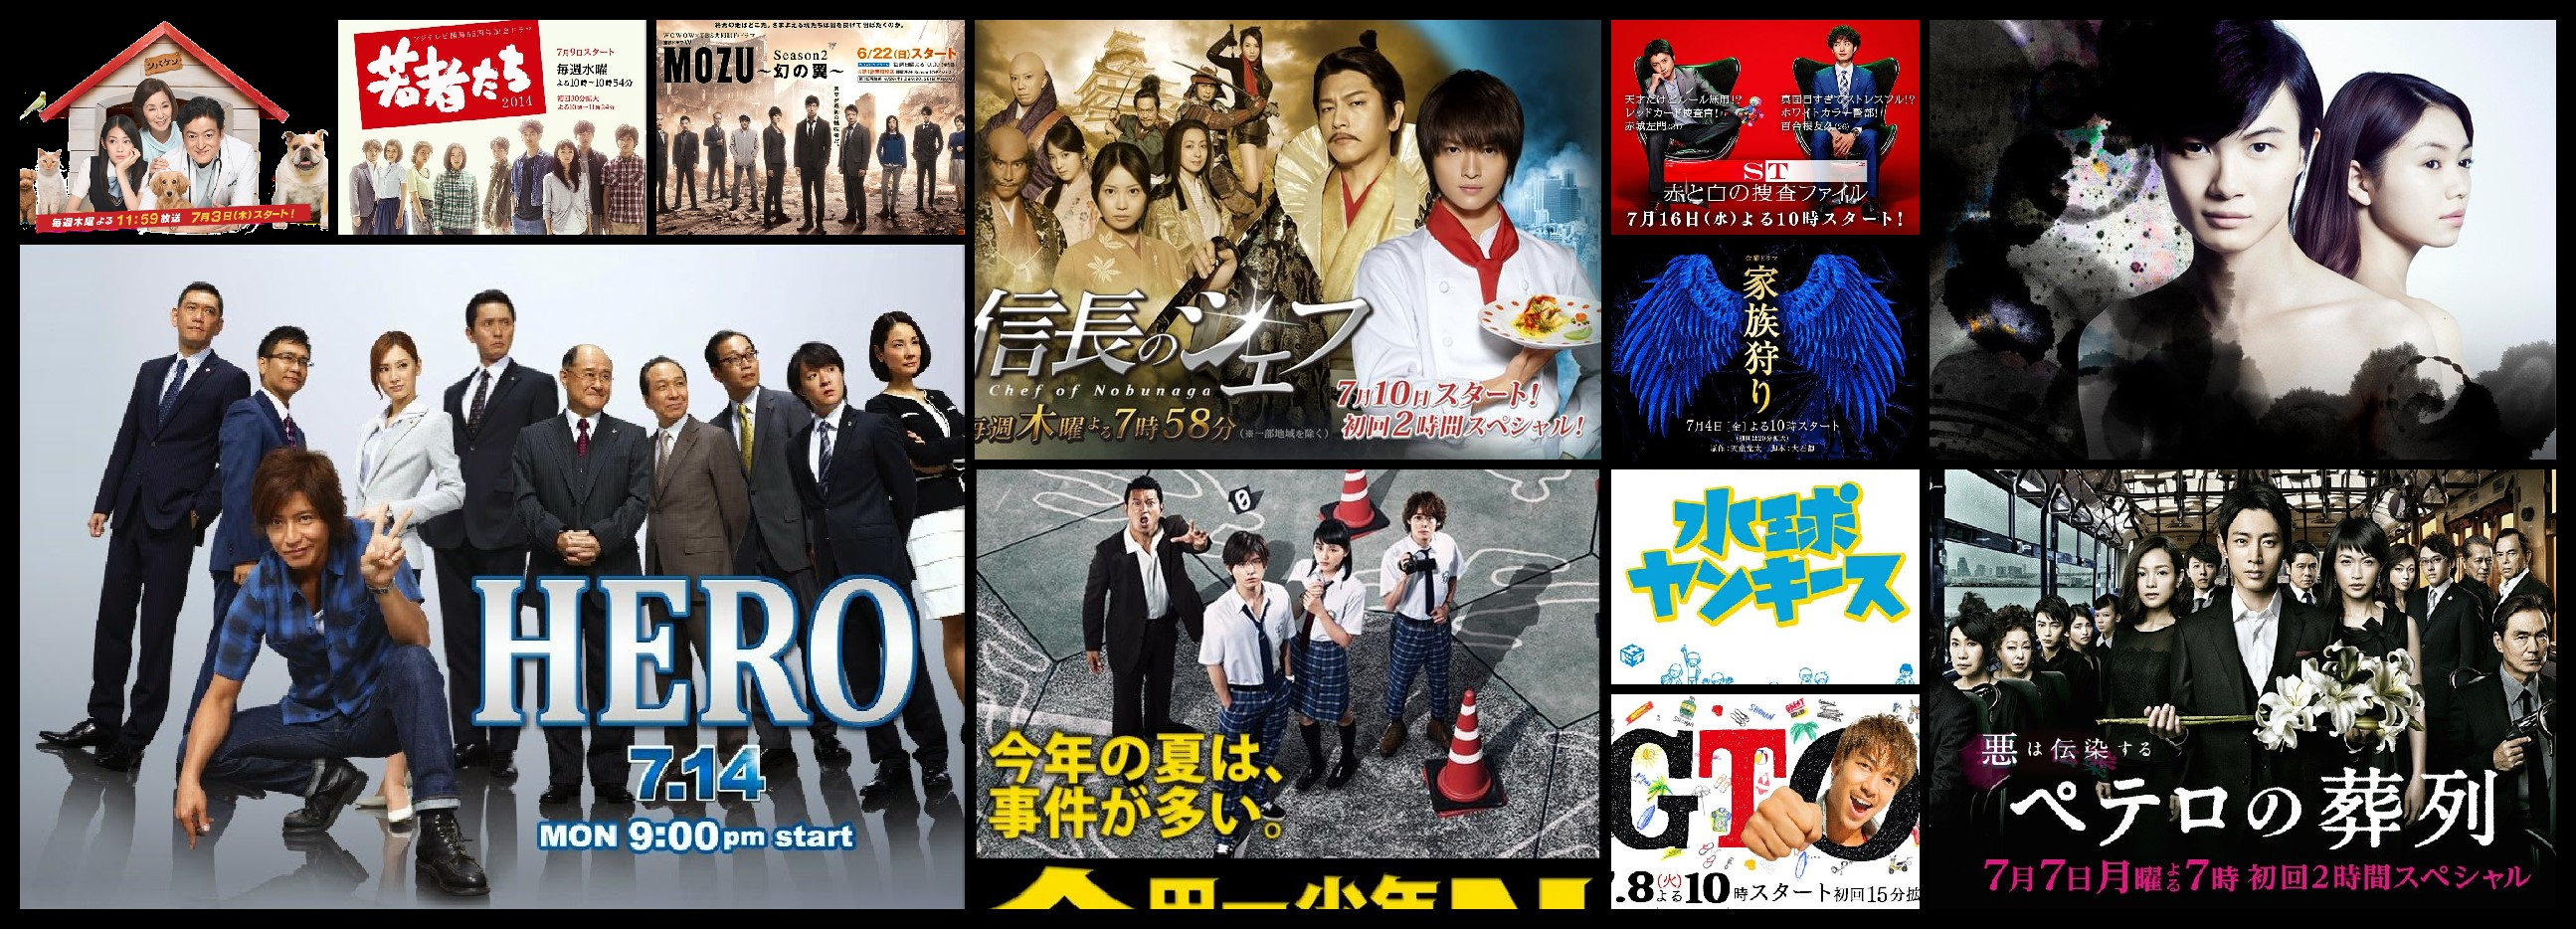 Upcoming Summer J-Dramas 2014